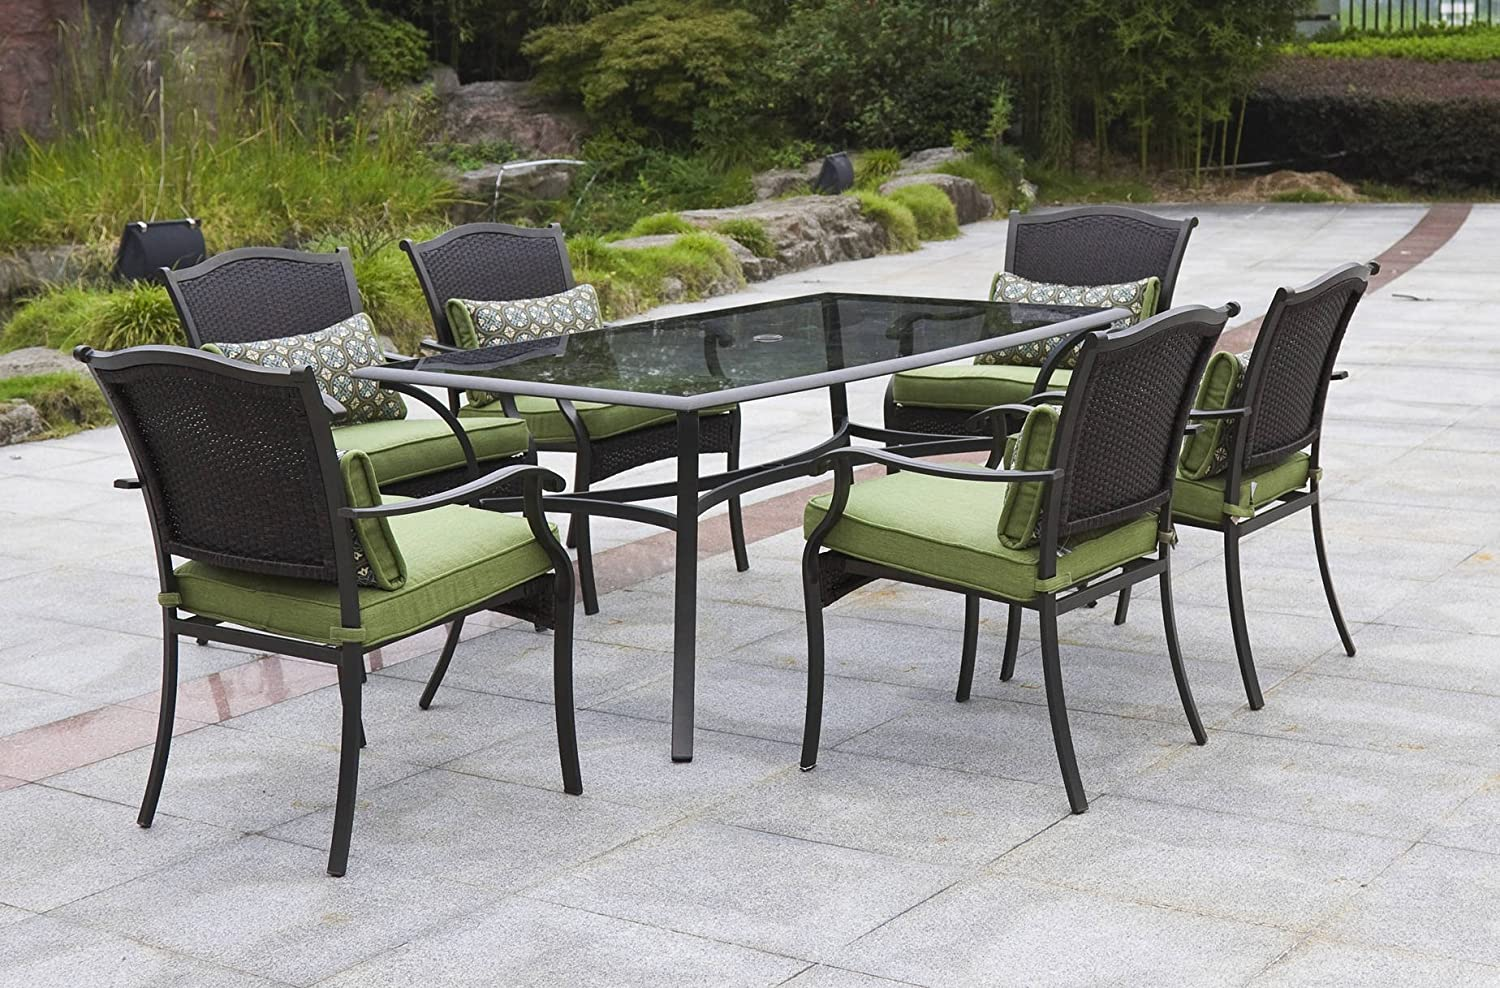 set trend together with patio limited dining sears la sets table pc boy peyton z availability classic outdoor